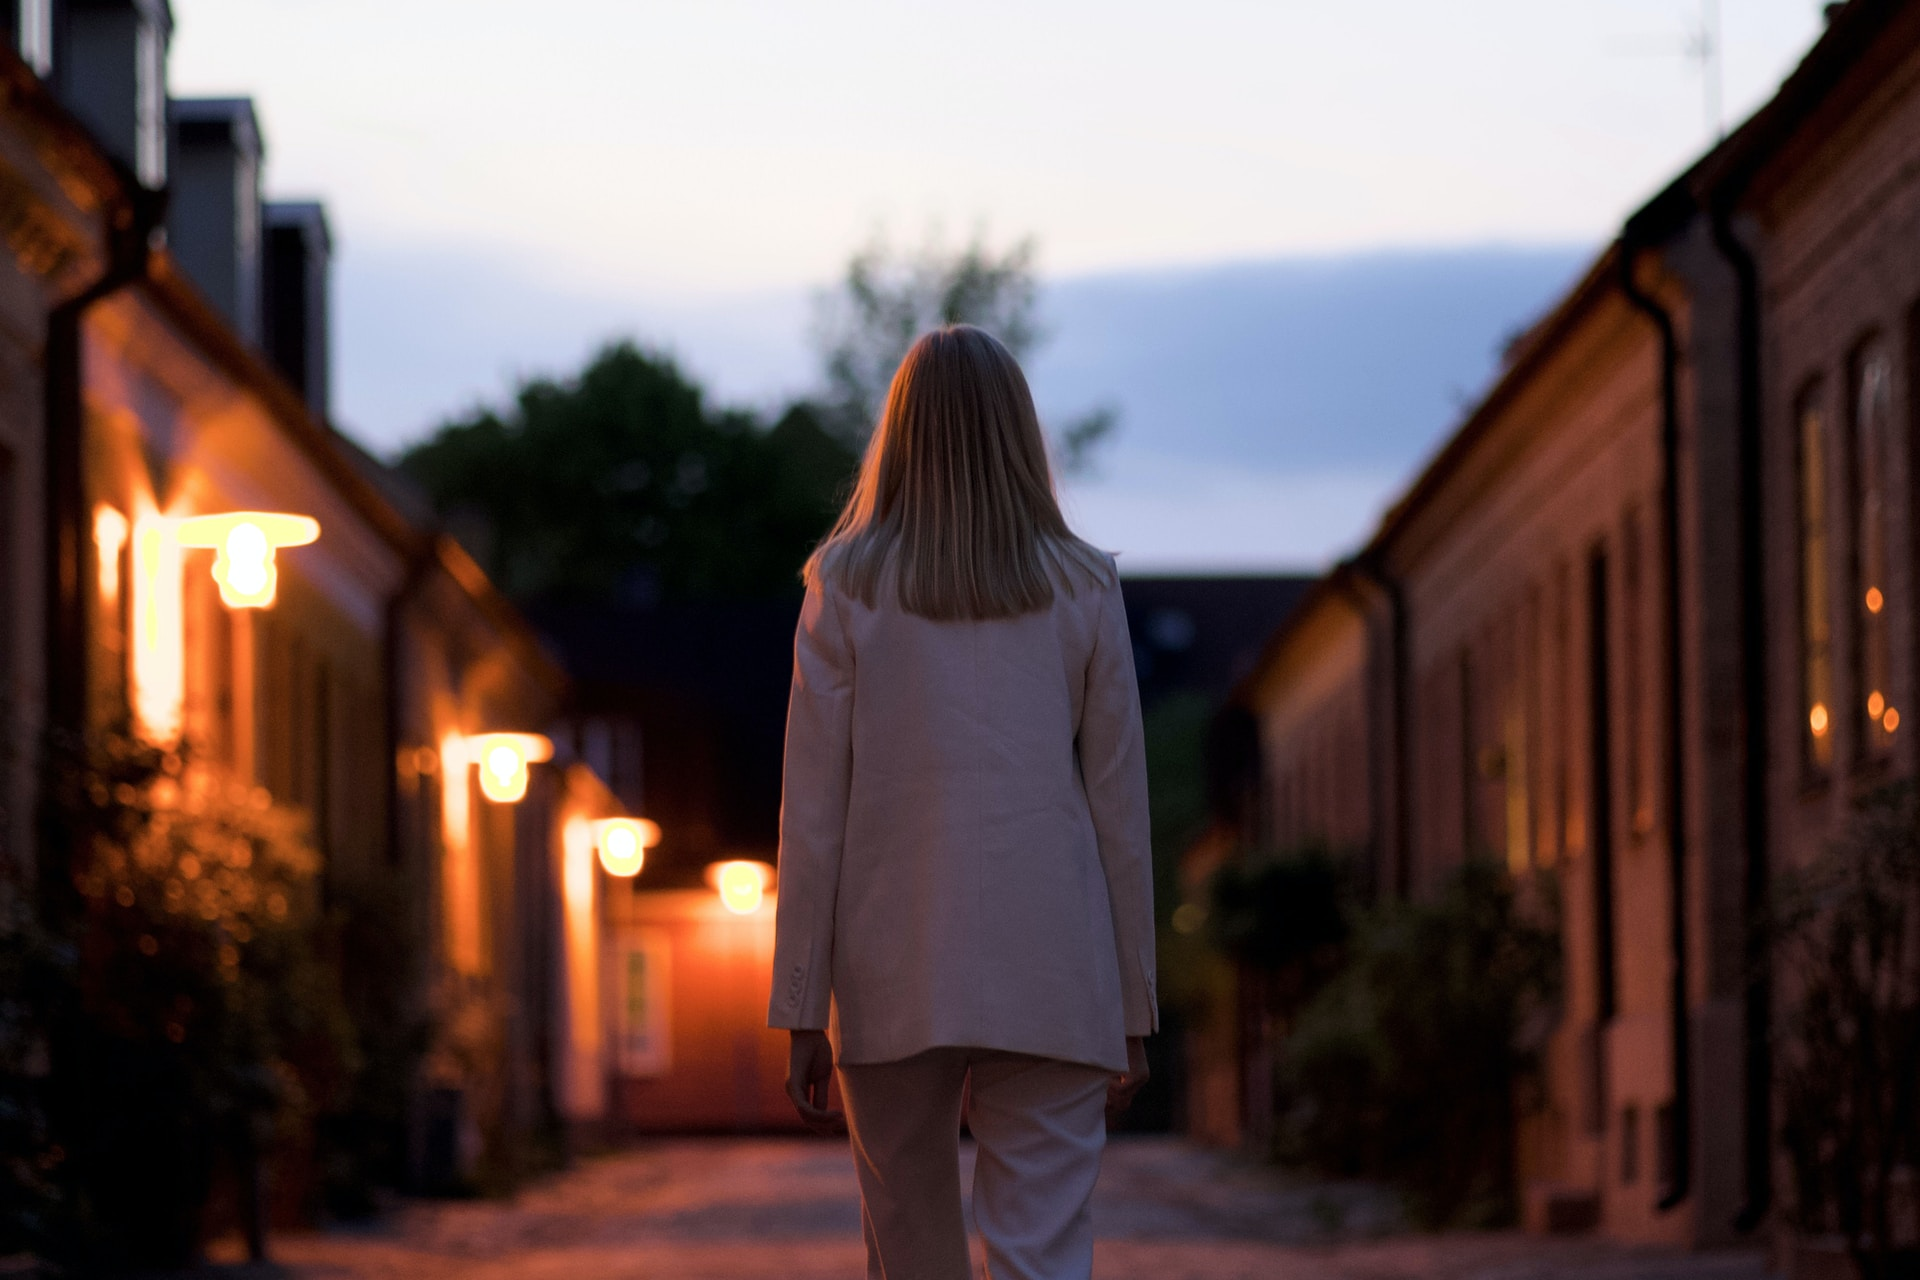 woman in white long sleeve shirt and gray pants standing on brown brick pathway during sunset